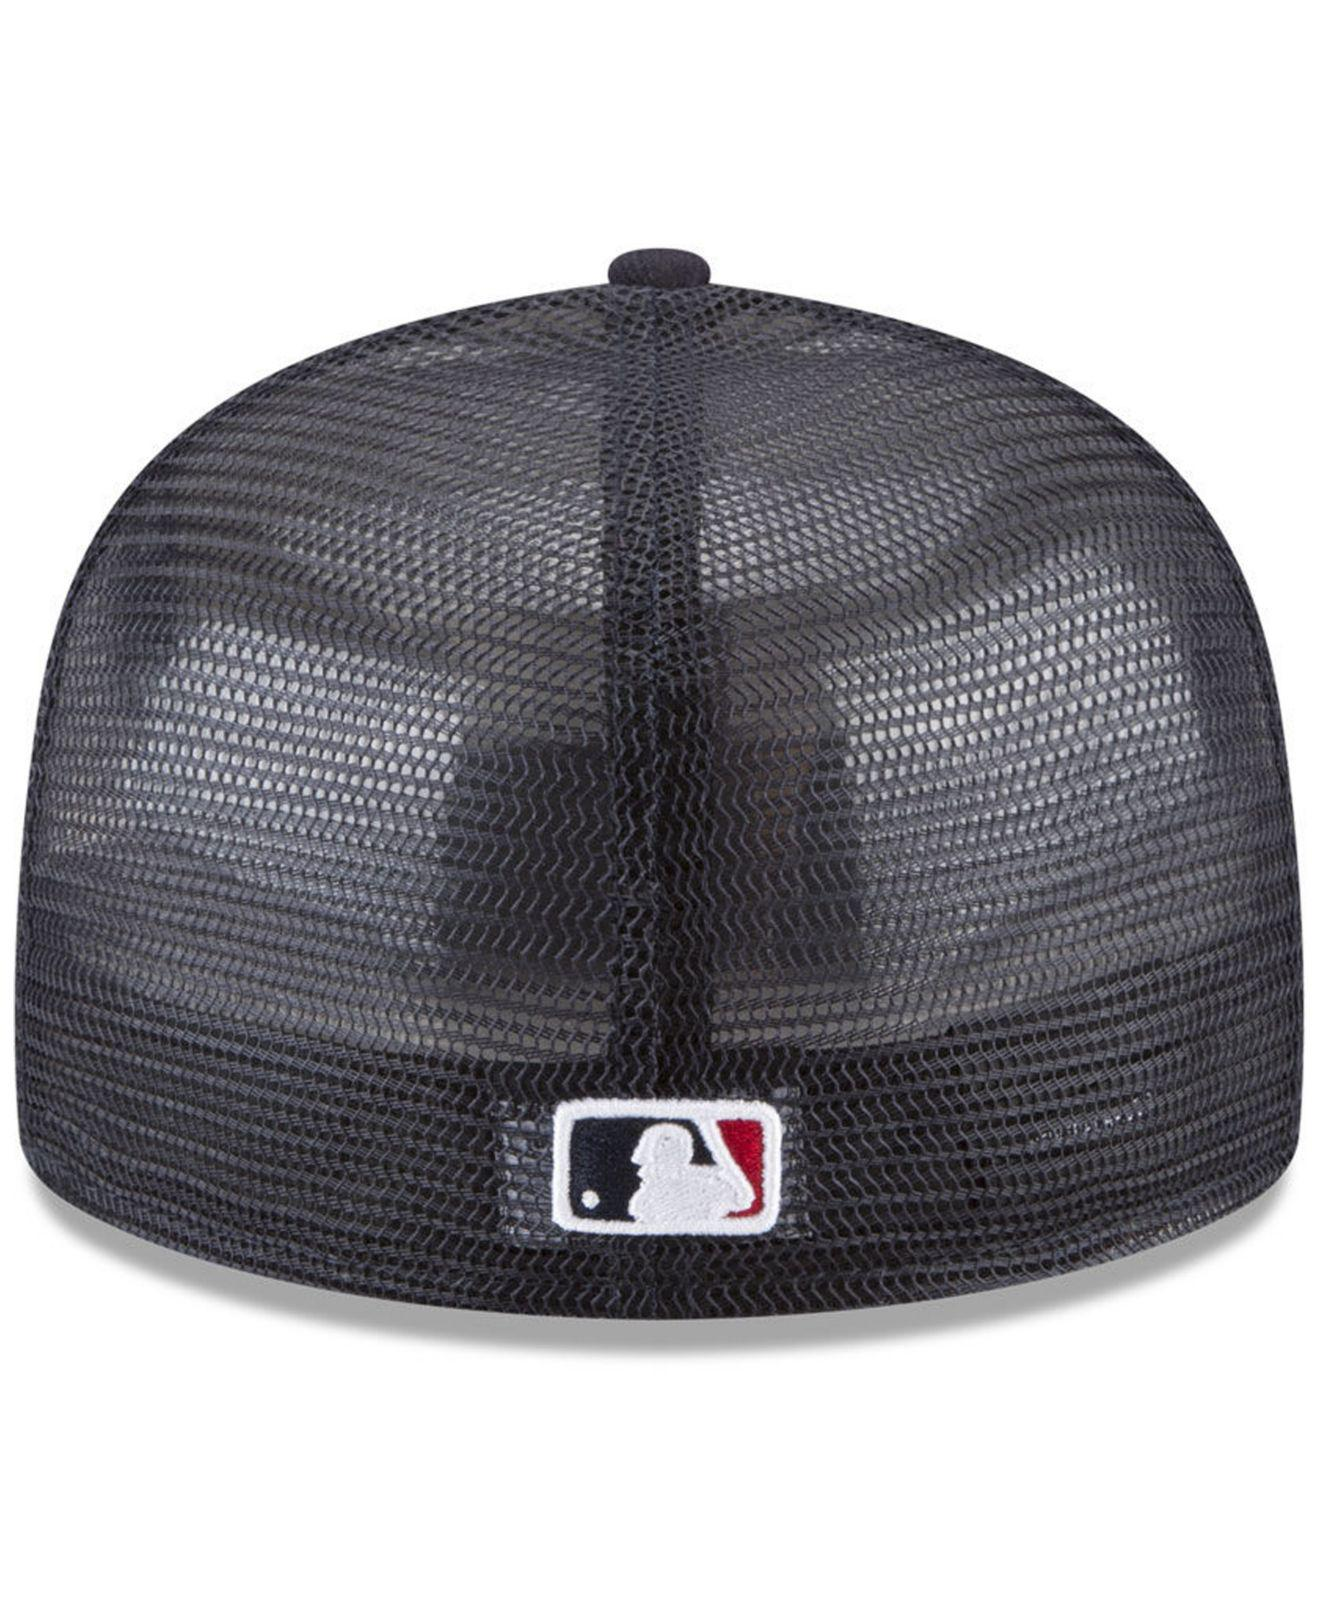 promo code a2095 bb316 ... clearance st. louis cardinals on field mesh back 59fifty fitted cap  for. view fullscreen